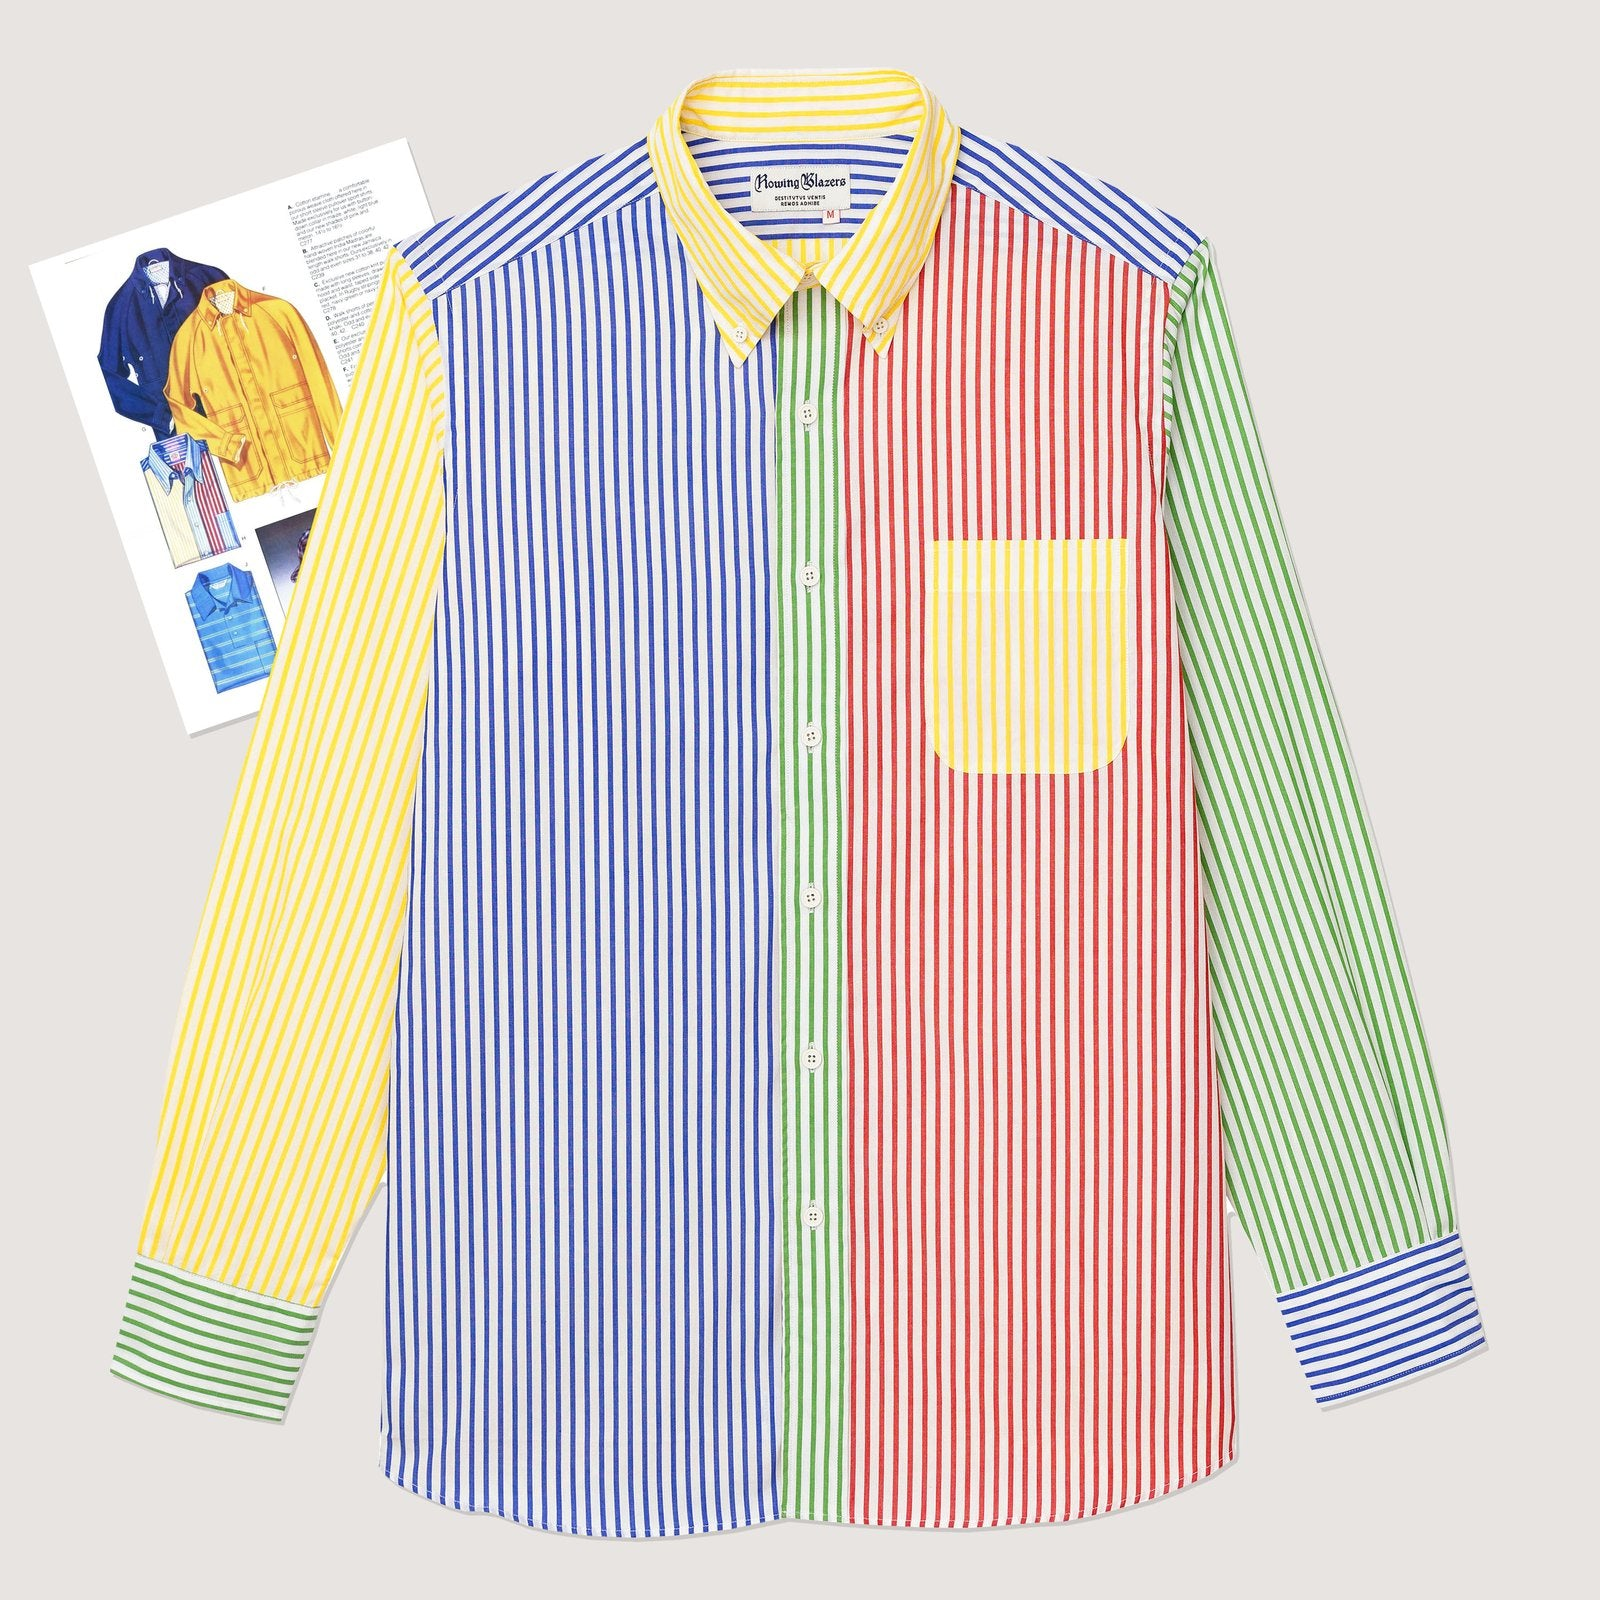 Rowing Blazers OG Fun Shirt